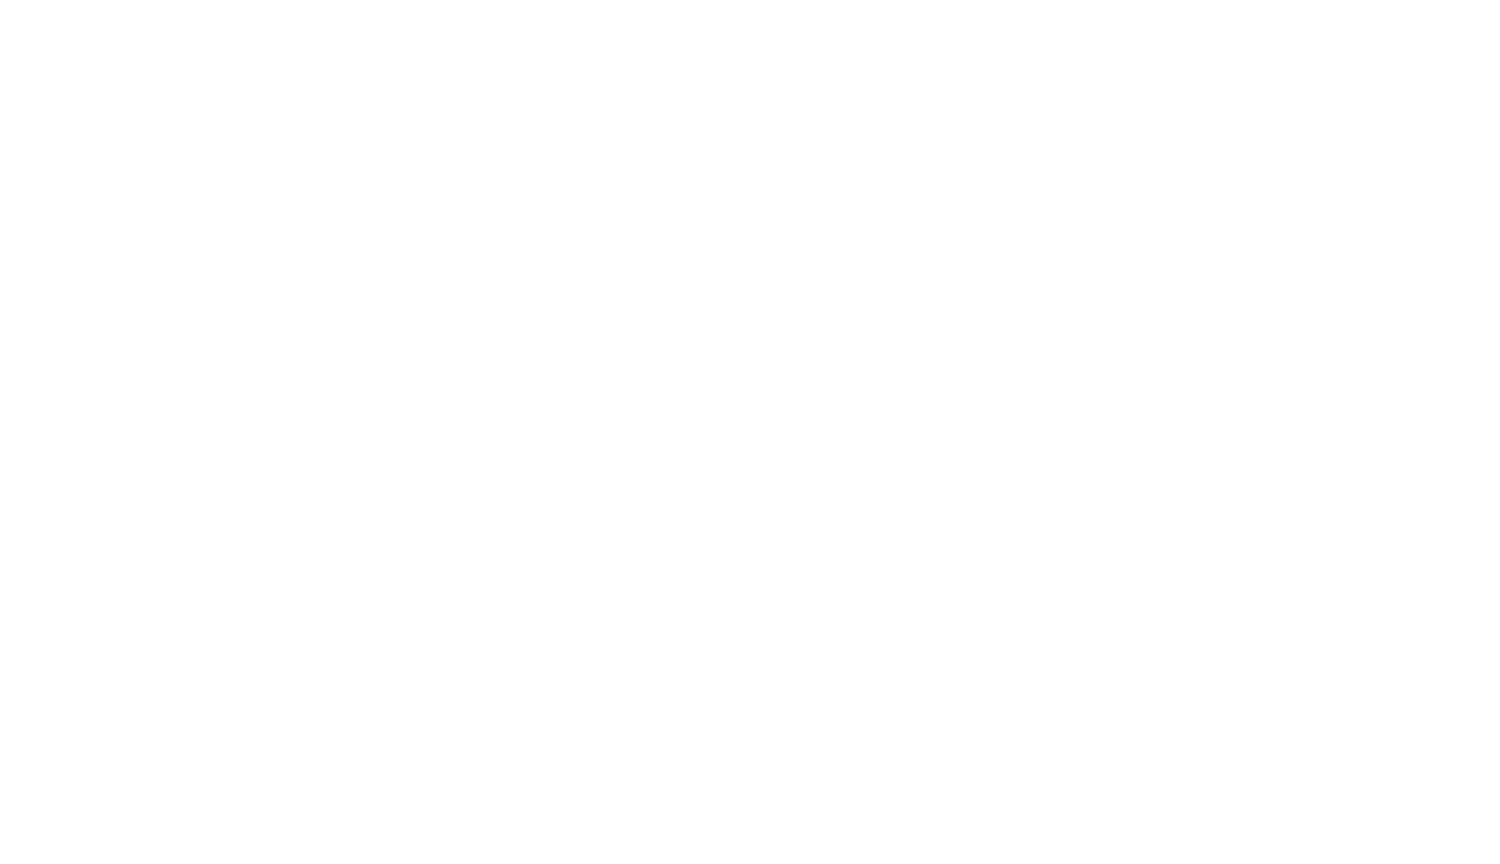 1st Foundry